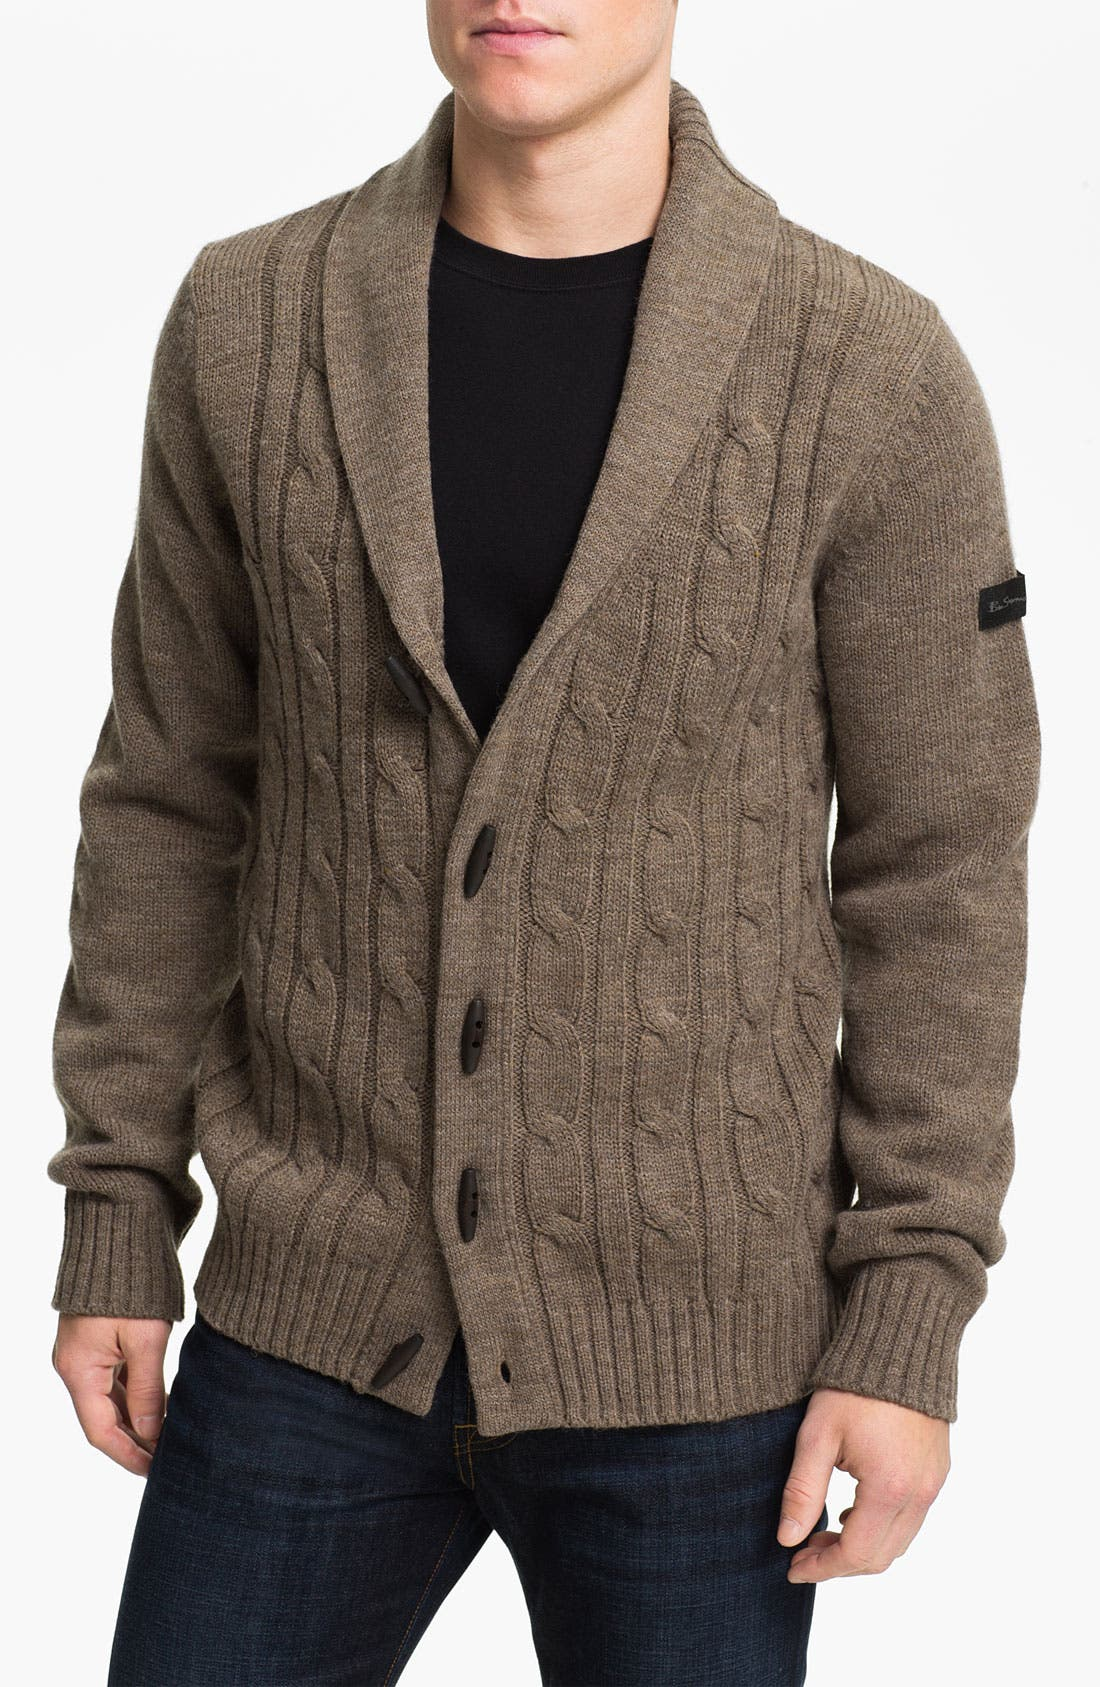 Alternate Image 1 Selected - Ben Sherman Shawl Collar Cardigan